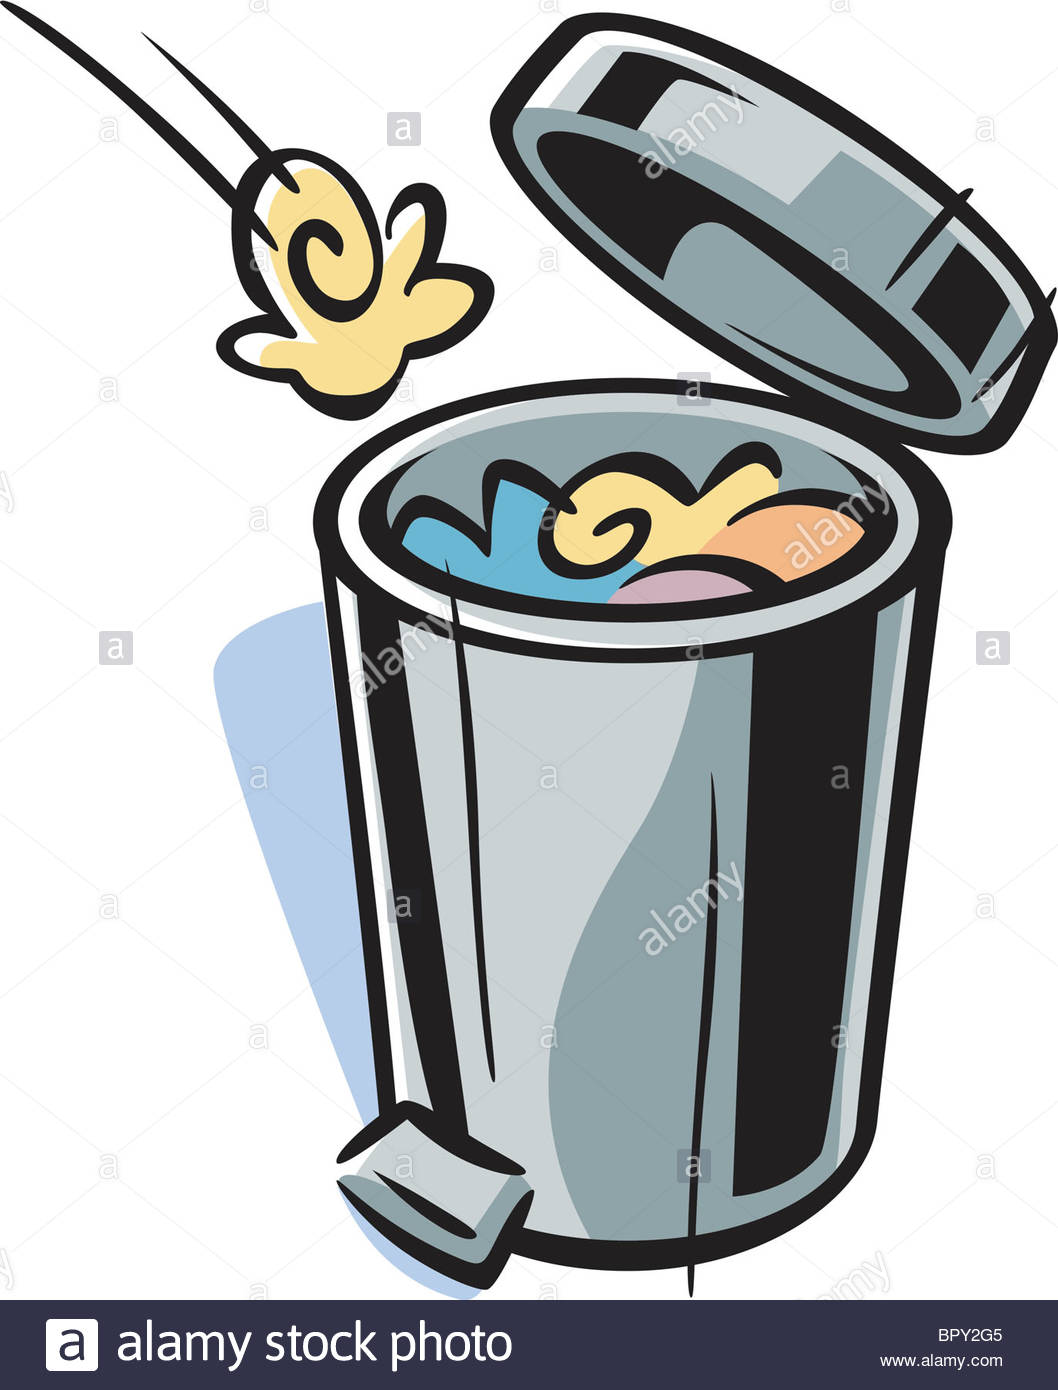 1058x1390 Cartoon Drawing Of A Trash Can Stock Photo 31327525